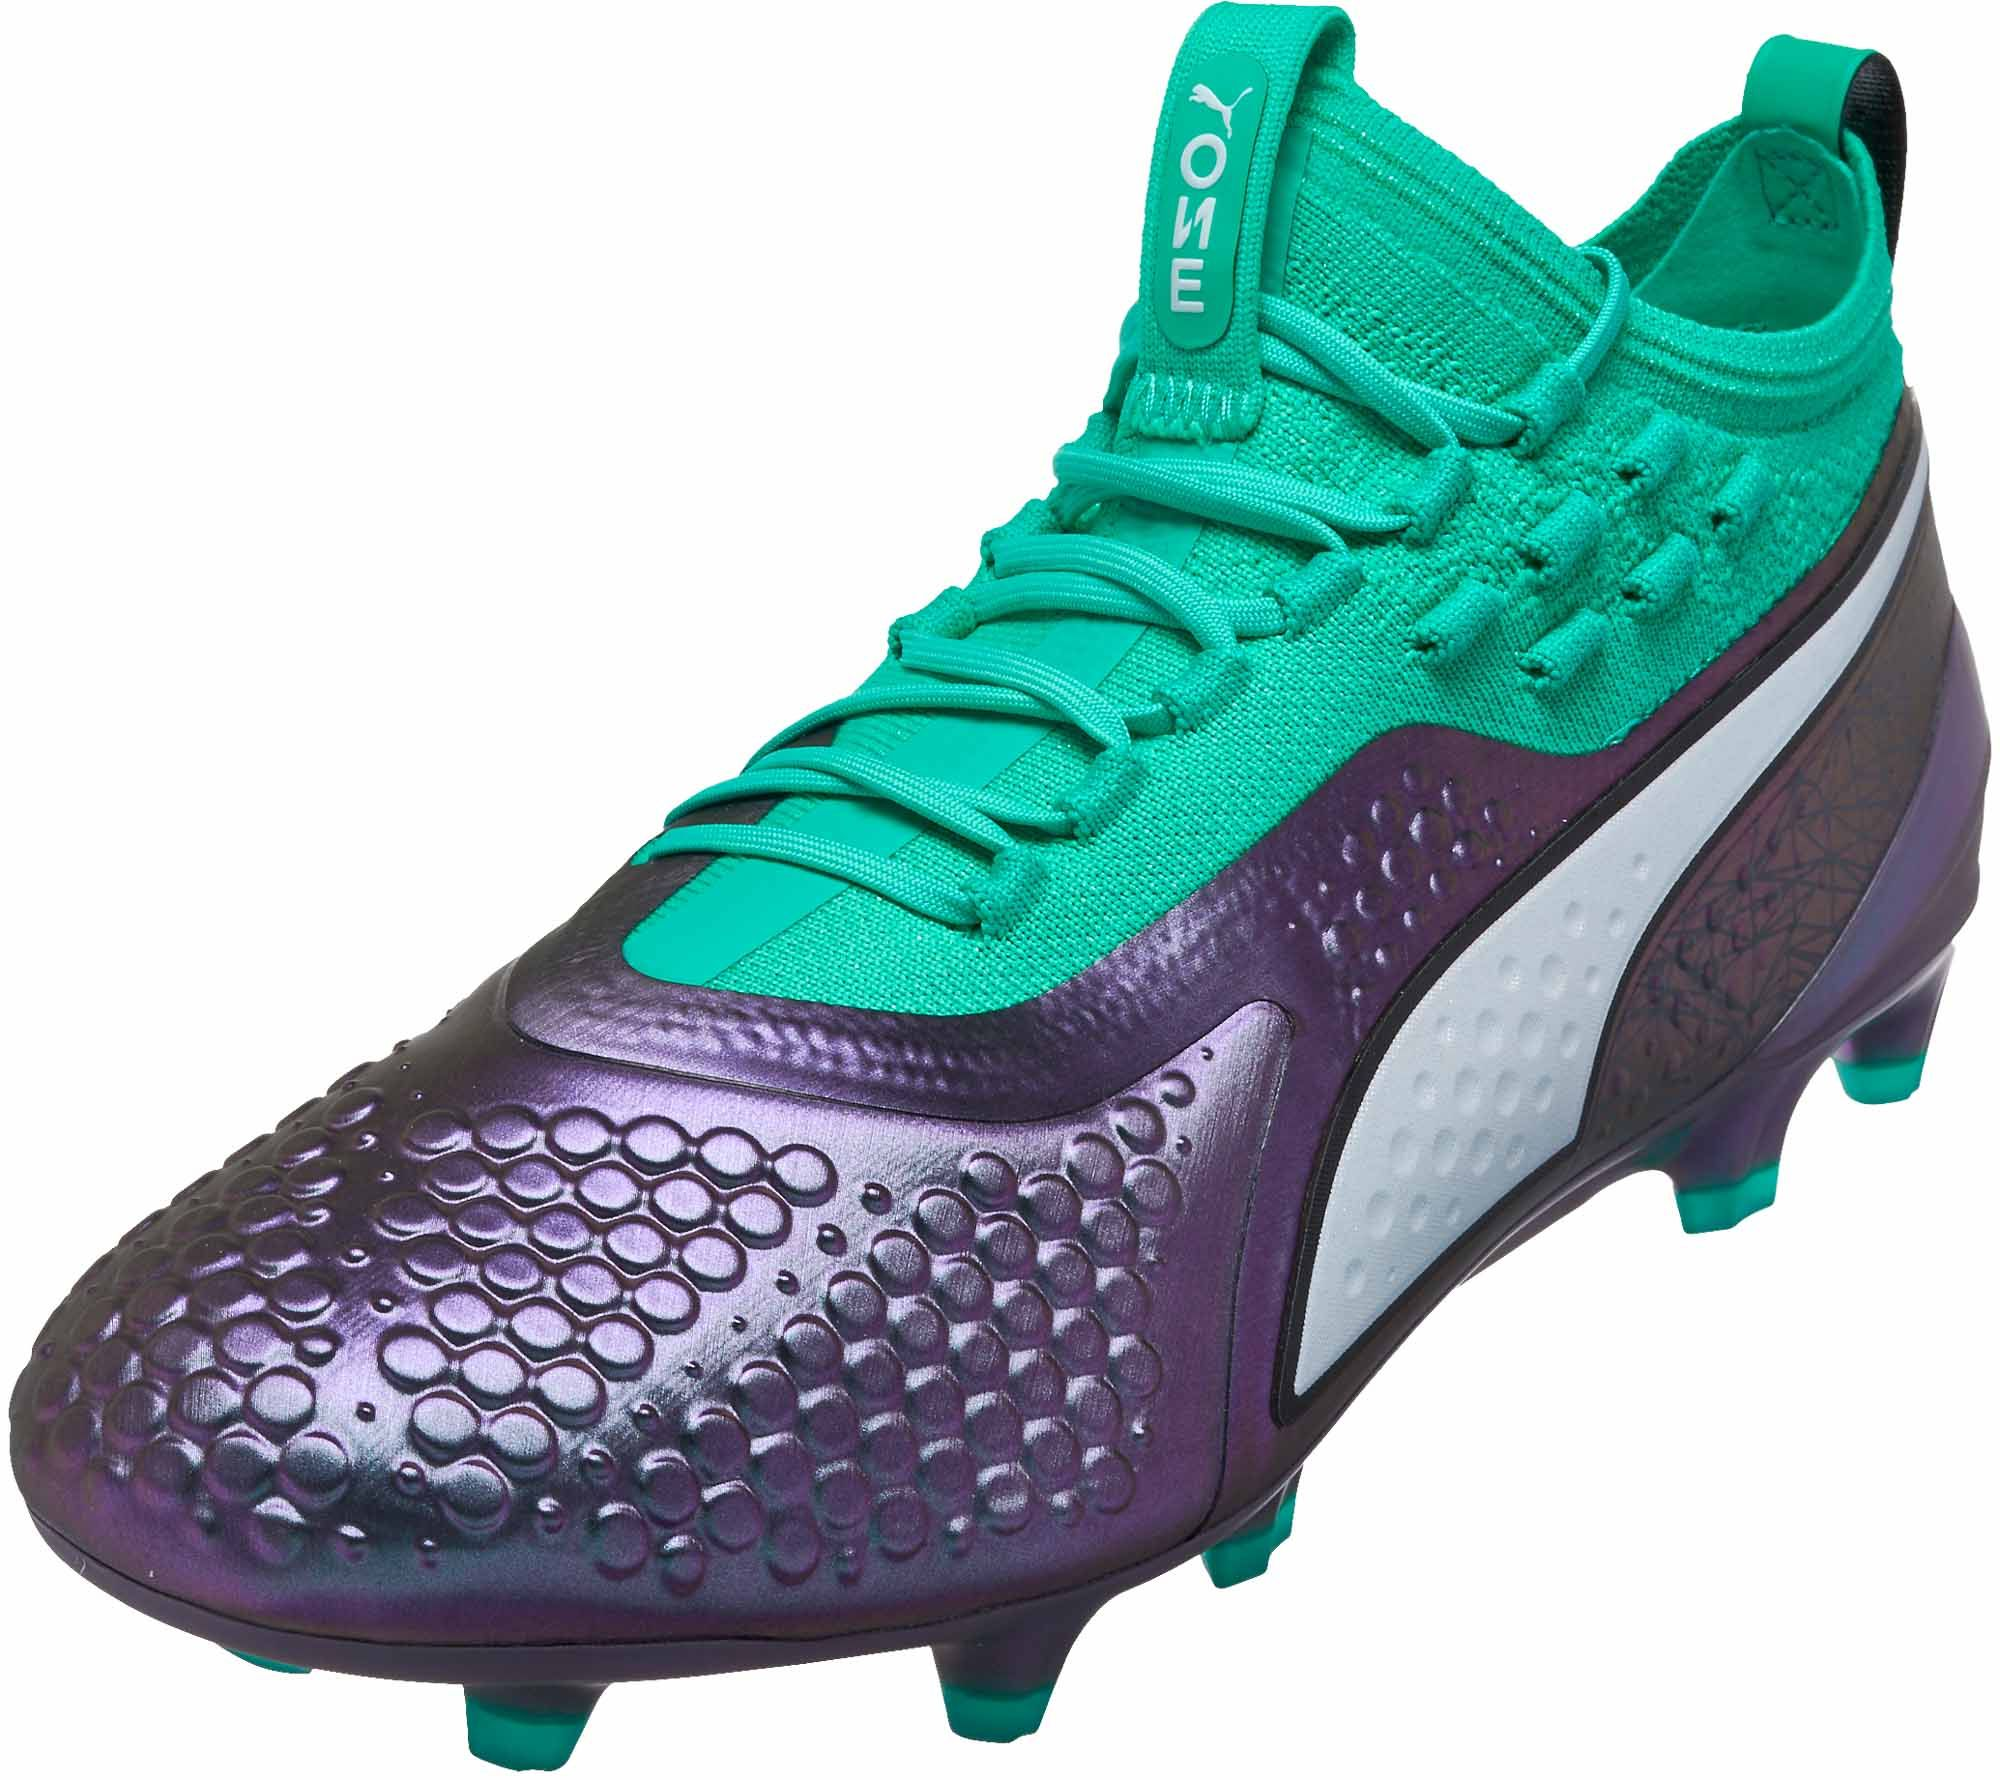 competitive price 5c4af 3bd09 Puma One 1 Illuminate pack. Buy it from SoccerPro.